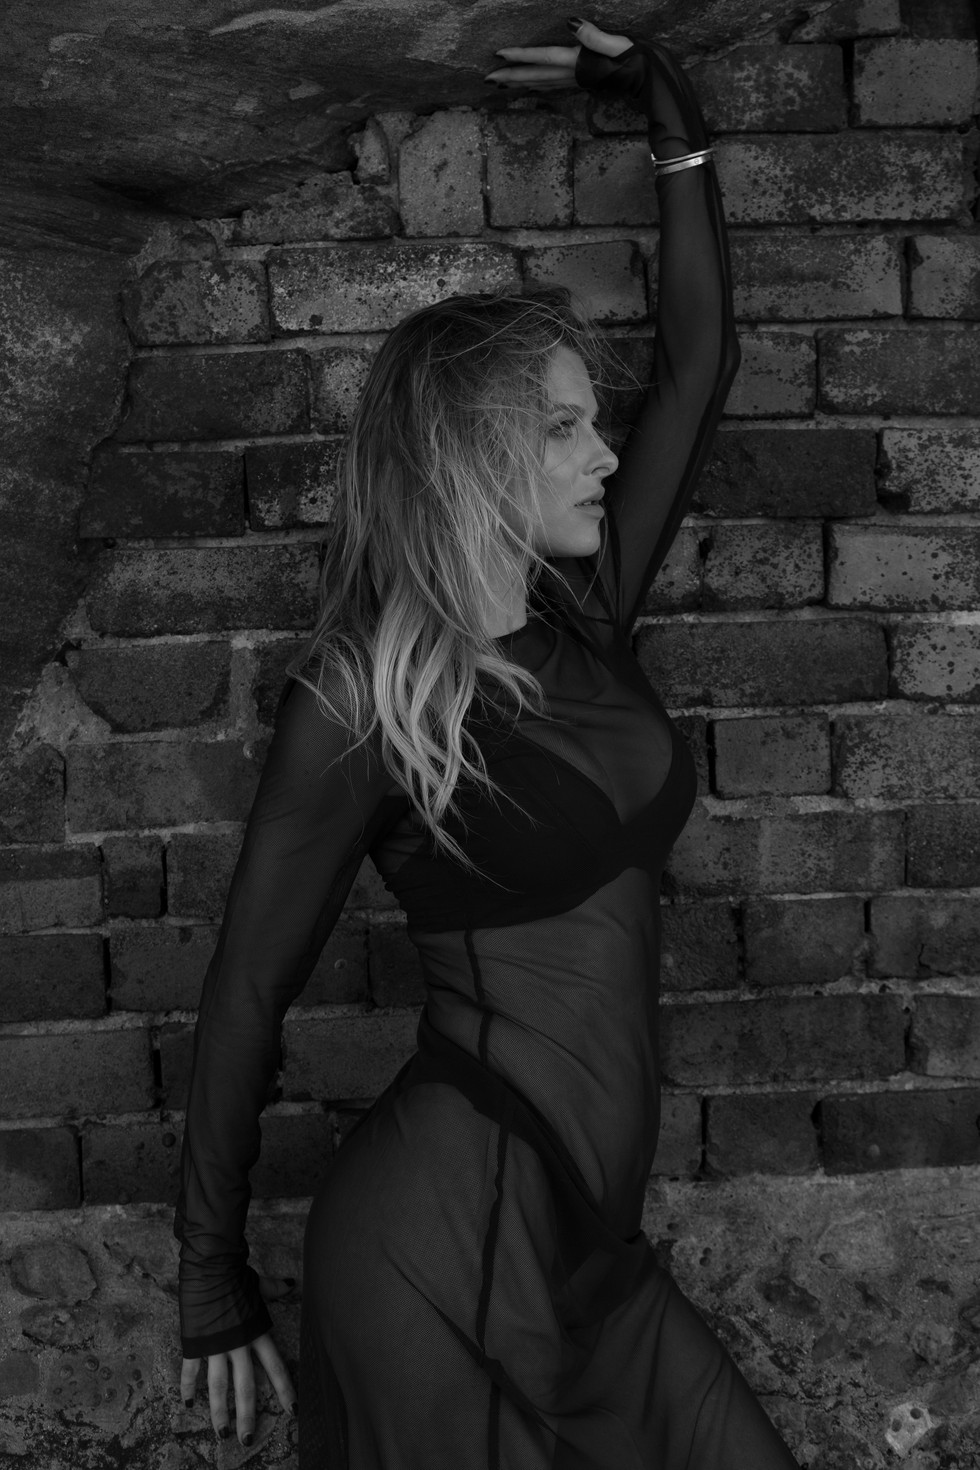 Kristy__by_CoogeePhotography-208277.jpg